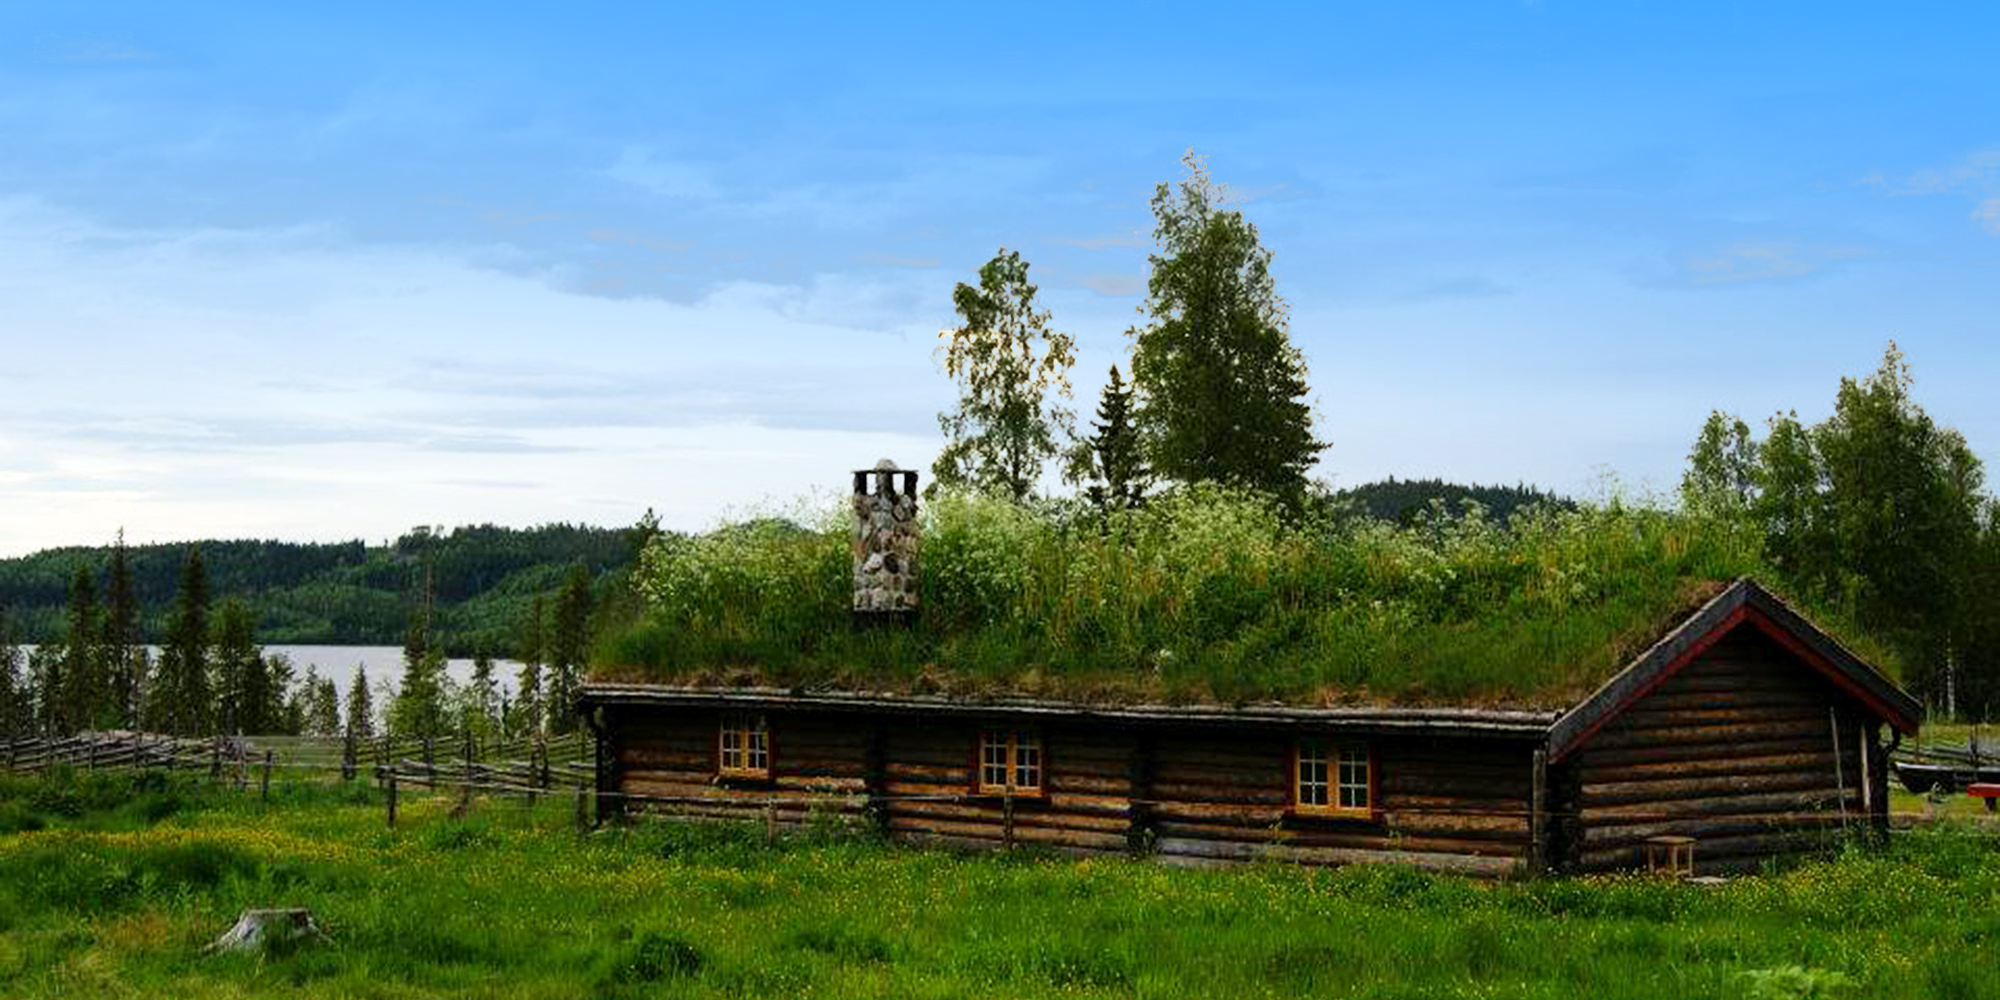 Hatlingsetra Summer Mountain Farm in Stod in STeinkjer, located next to Lake Hatlingvatnet. Foto: Hatlingsetra